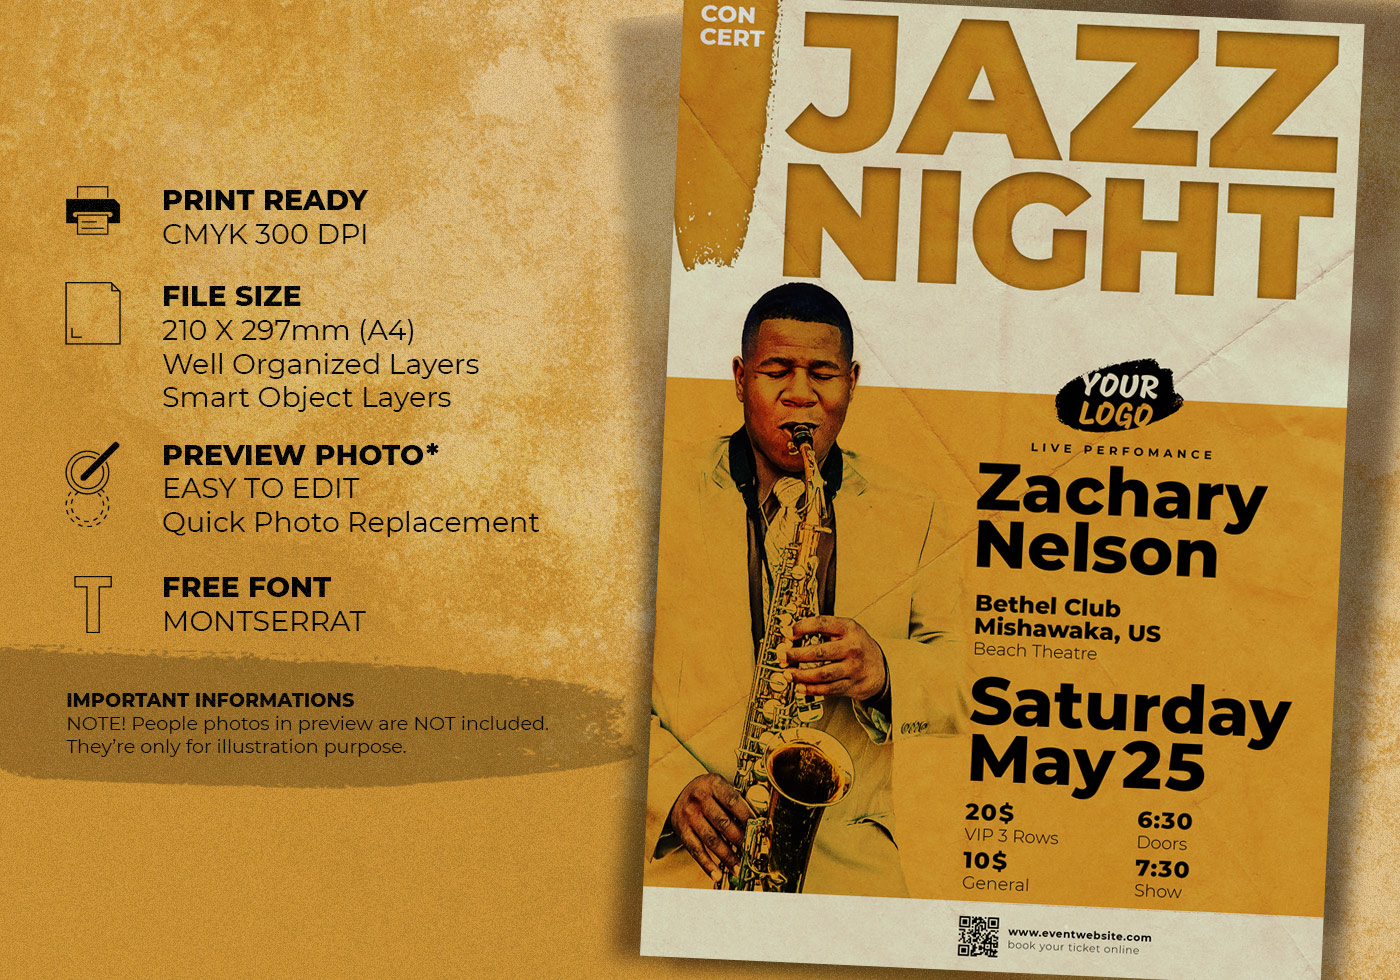 Jazz Concert Music Event Flyer Template - Free Photoshop